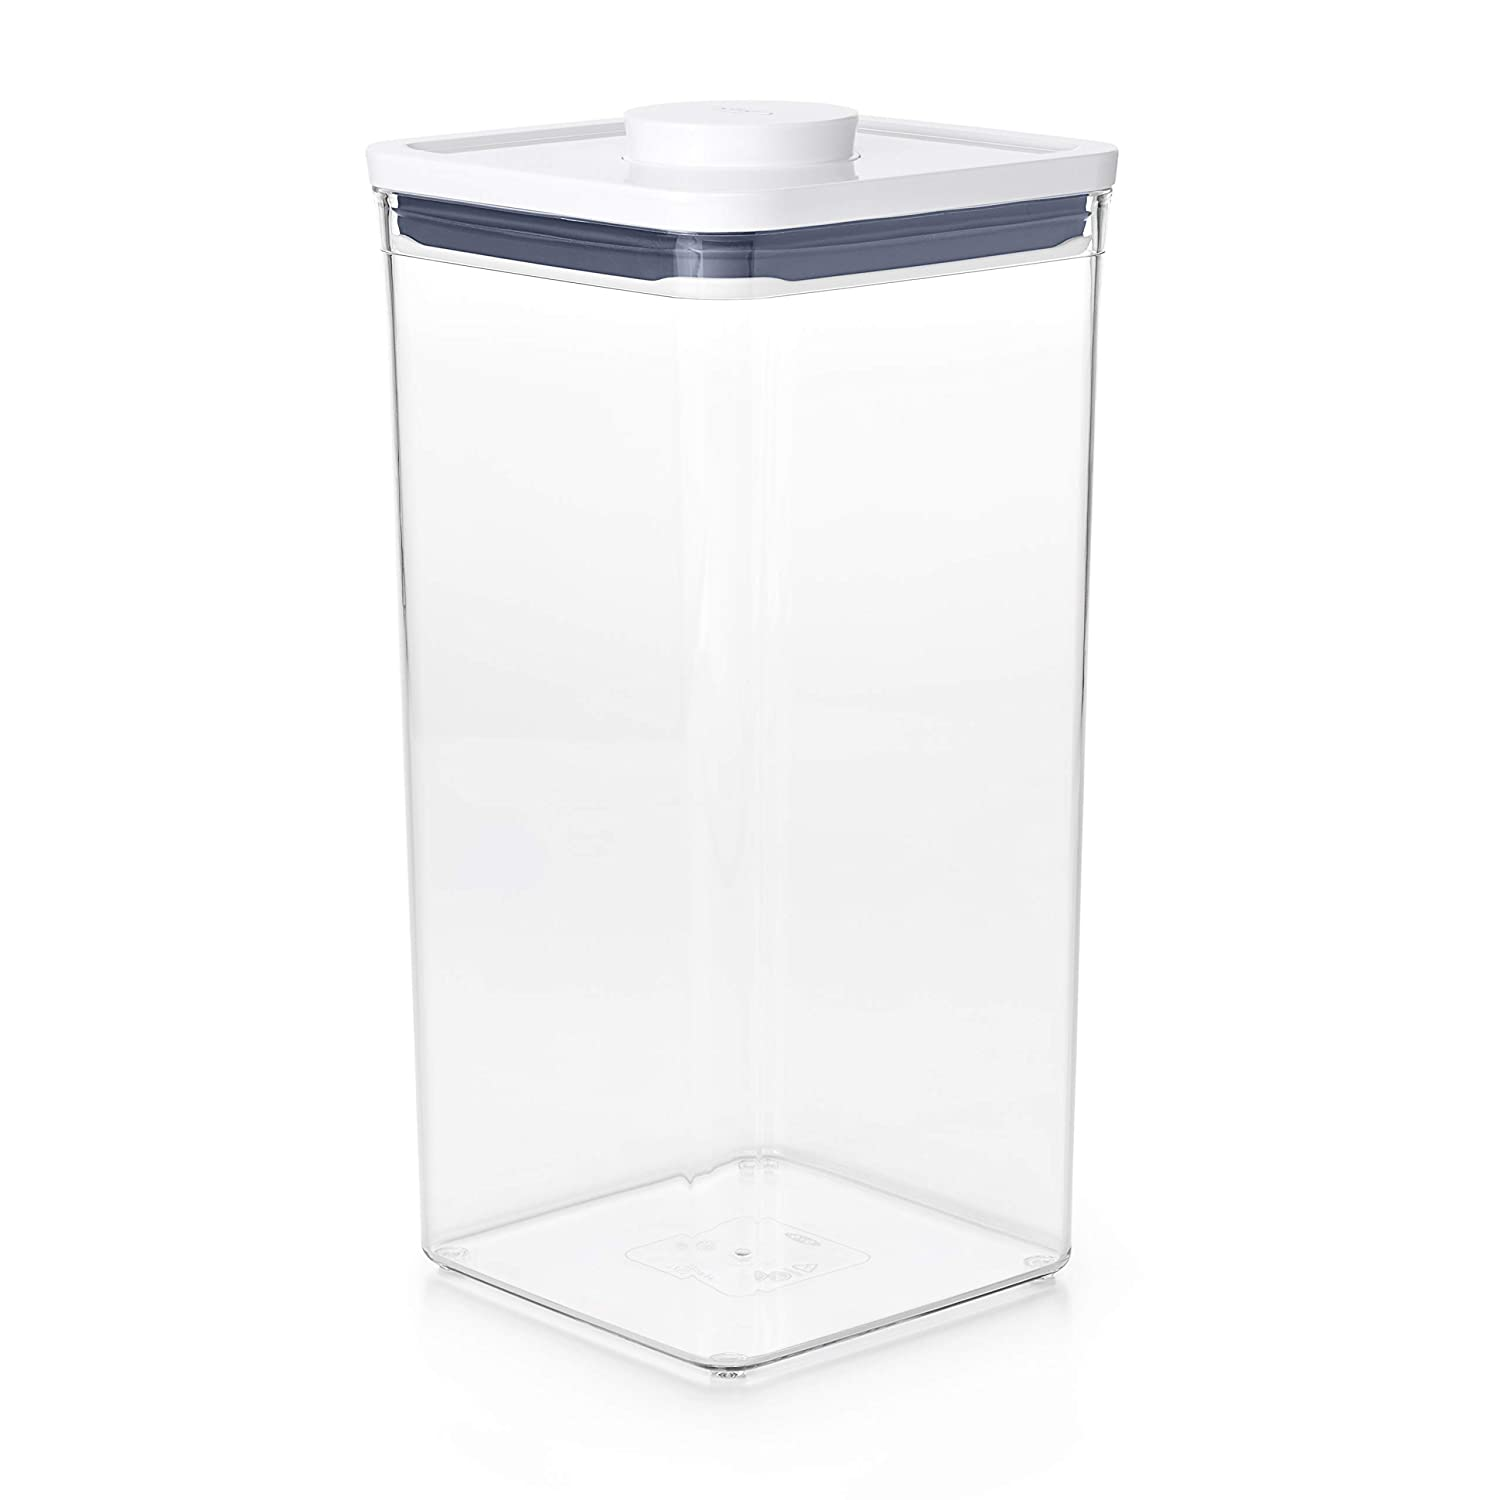 NEW OXO Good Grips POP Container - Airtight Food Storage - 6.0 Qt for Bulk Food and More